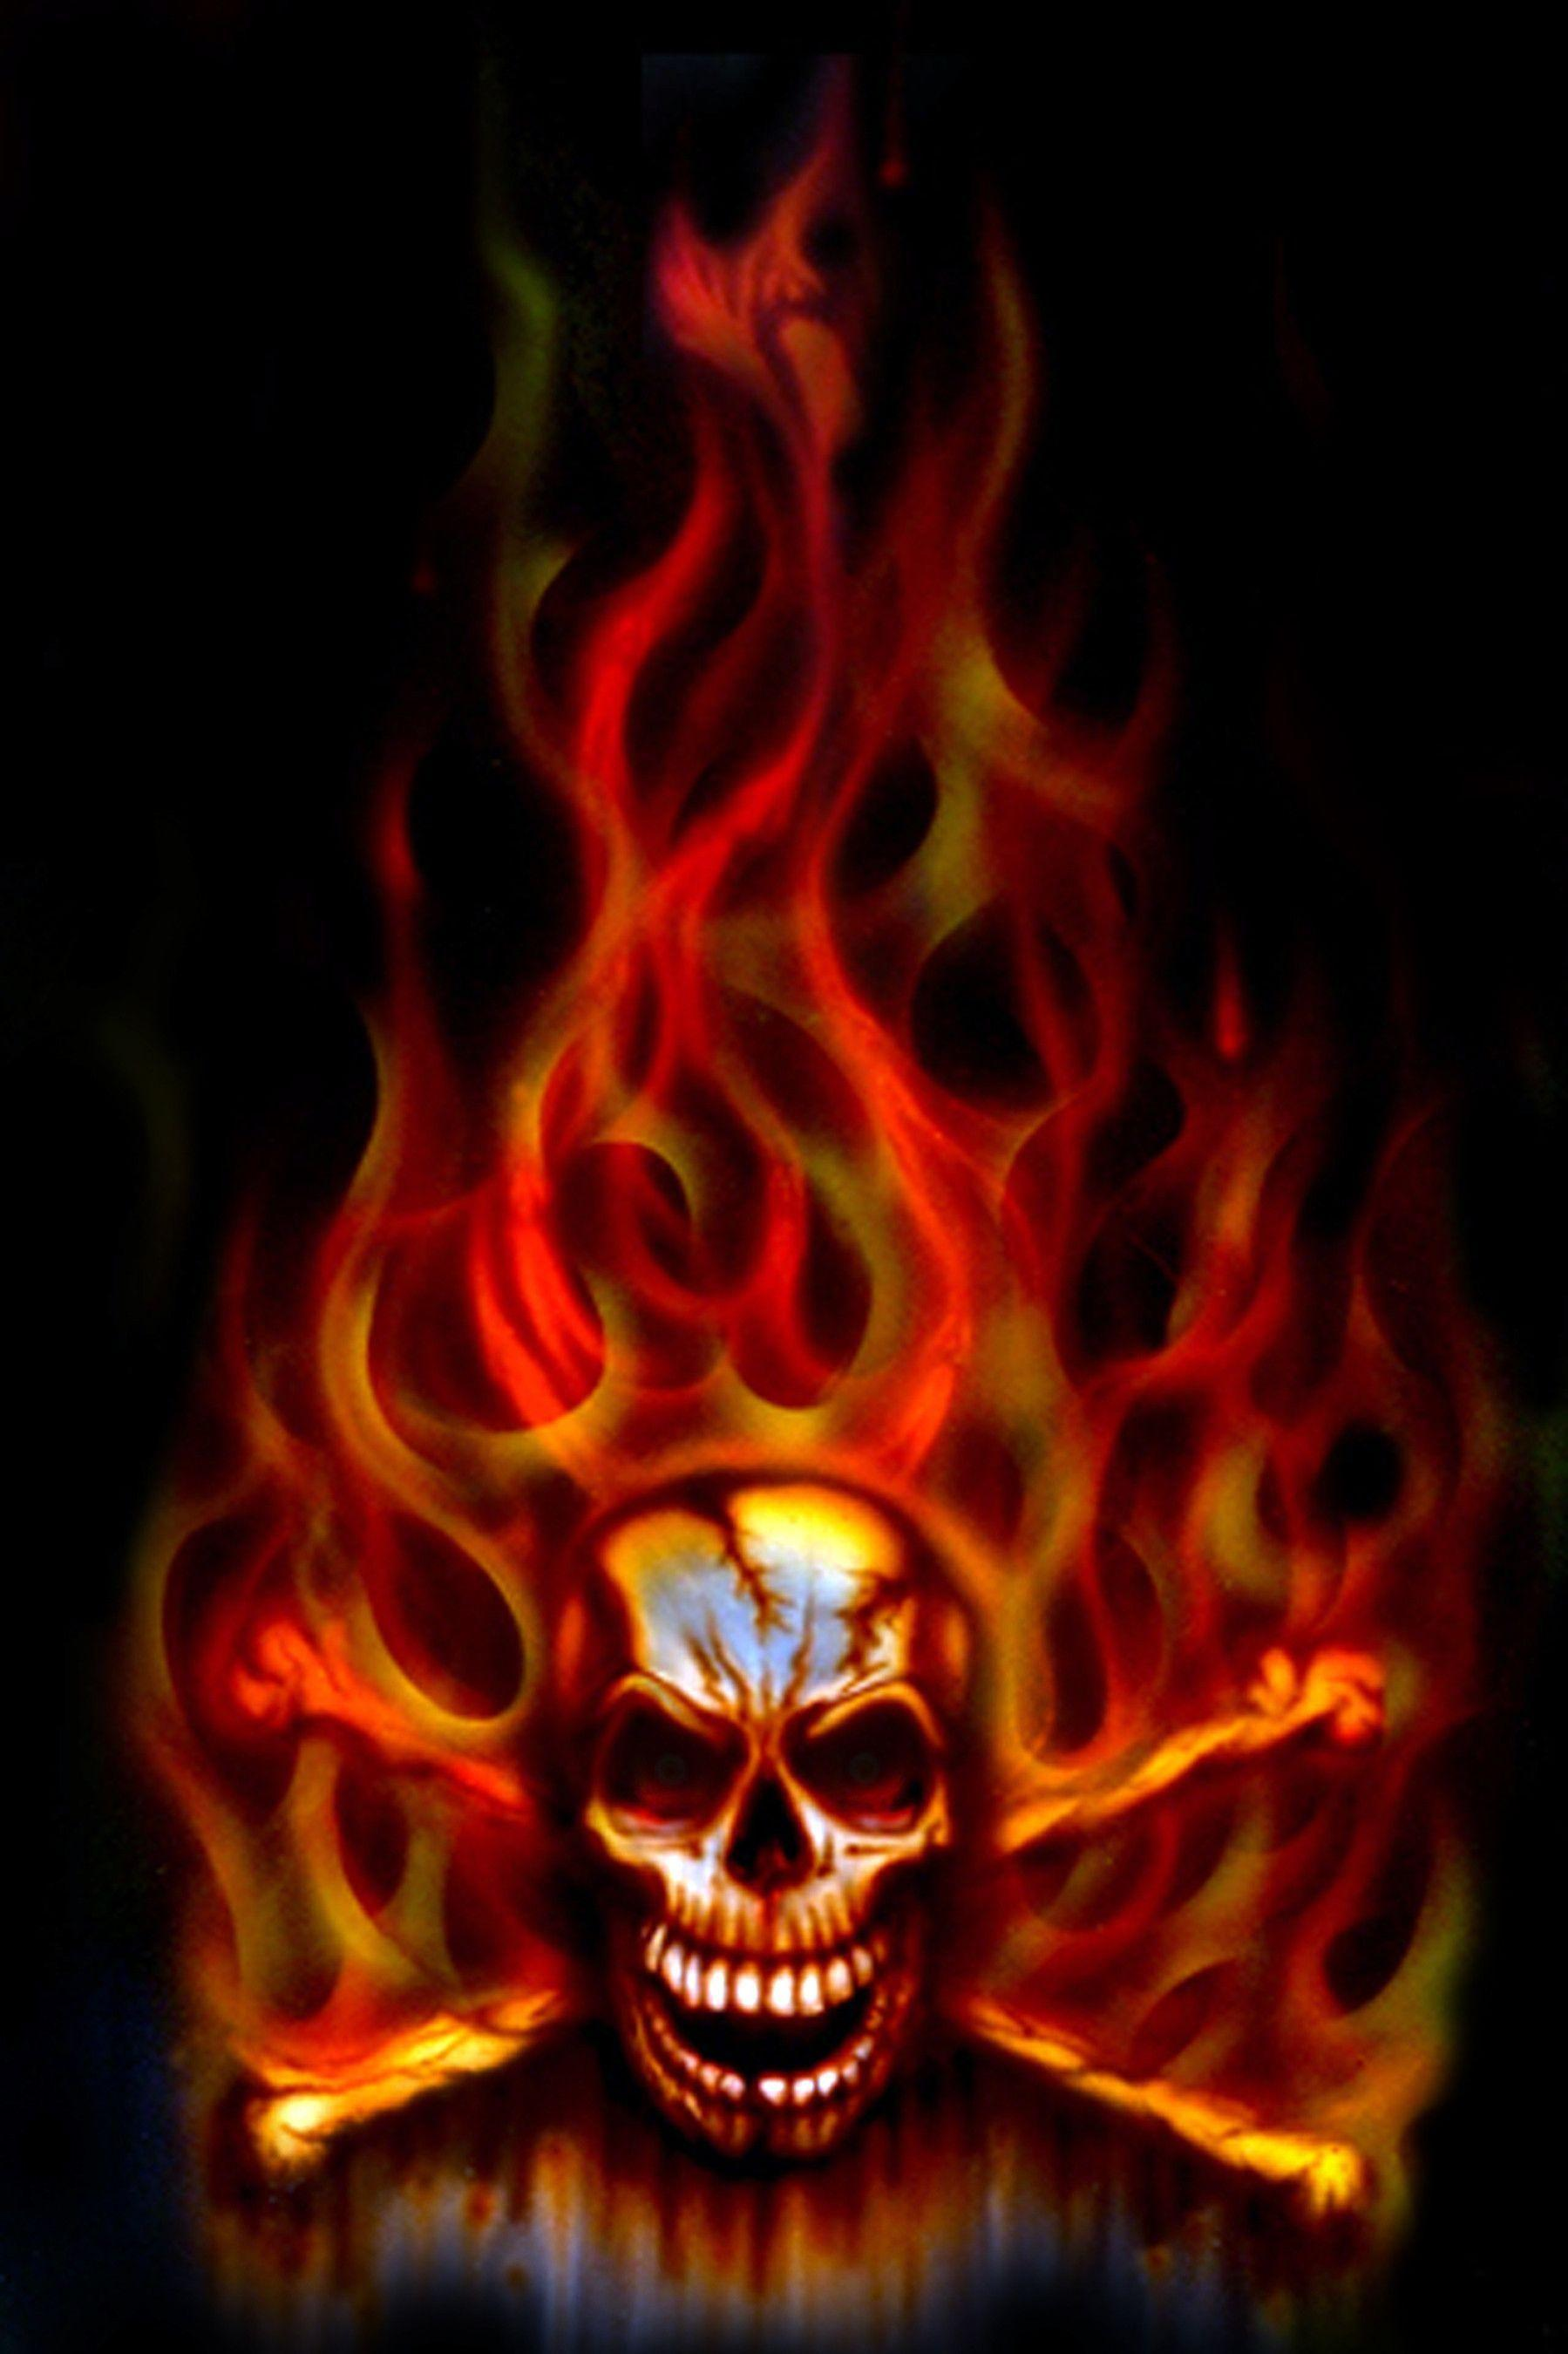 Flaming Skull Wallpapers - Wallpaper Cave